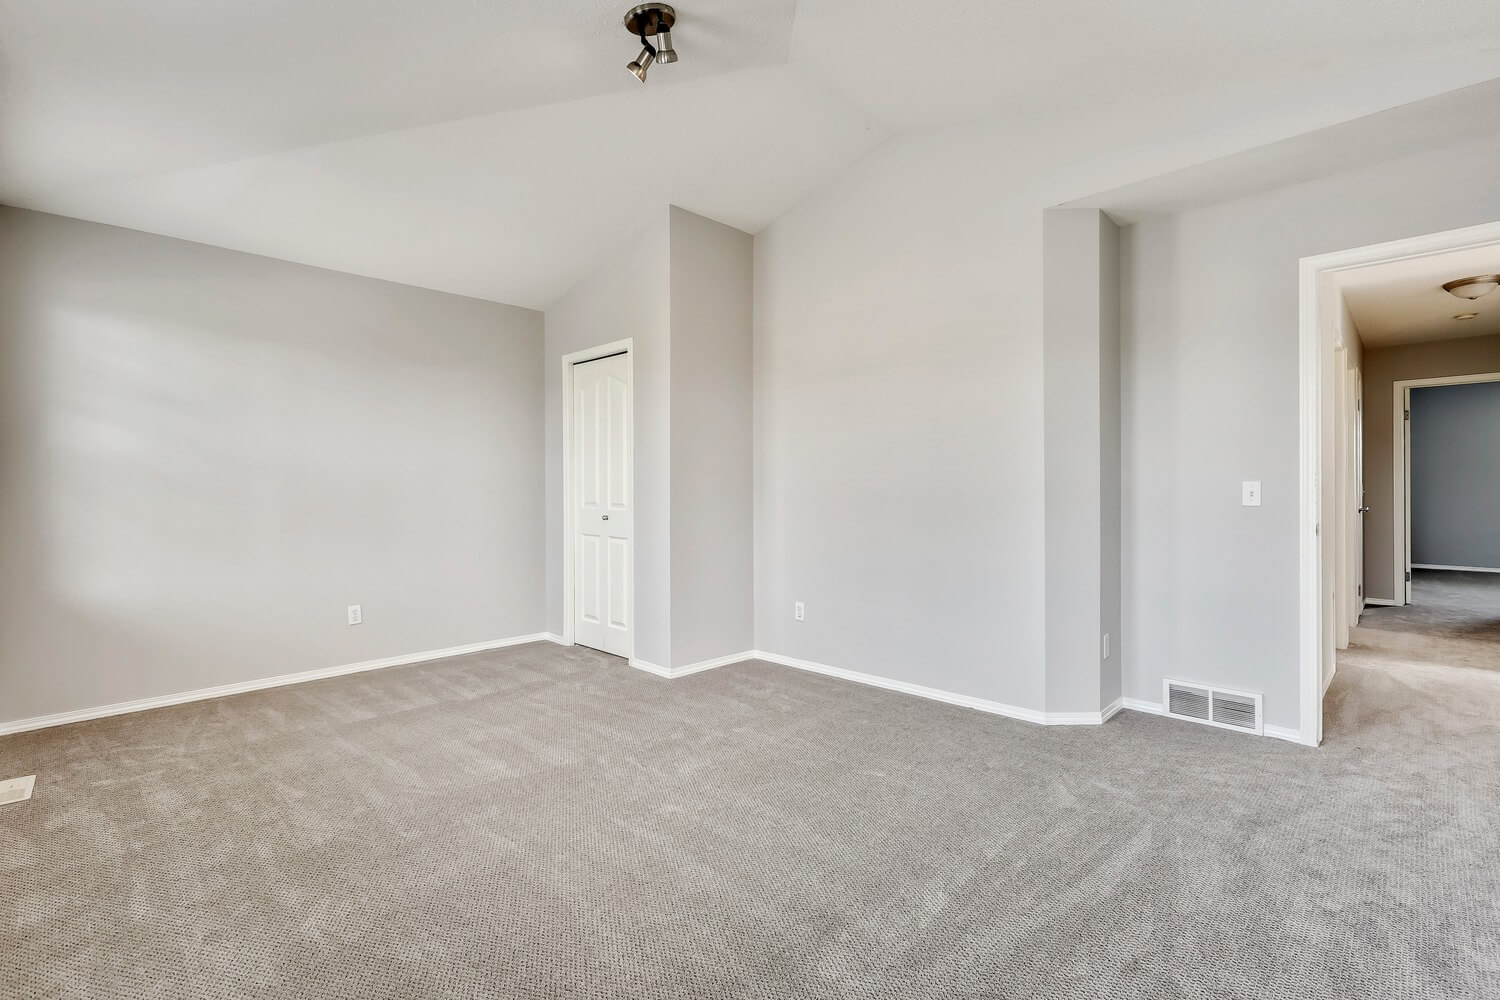 20190523__133 Somerglen Way SW__0012_Before Staging_sm.jpg